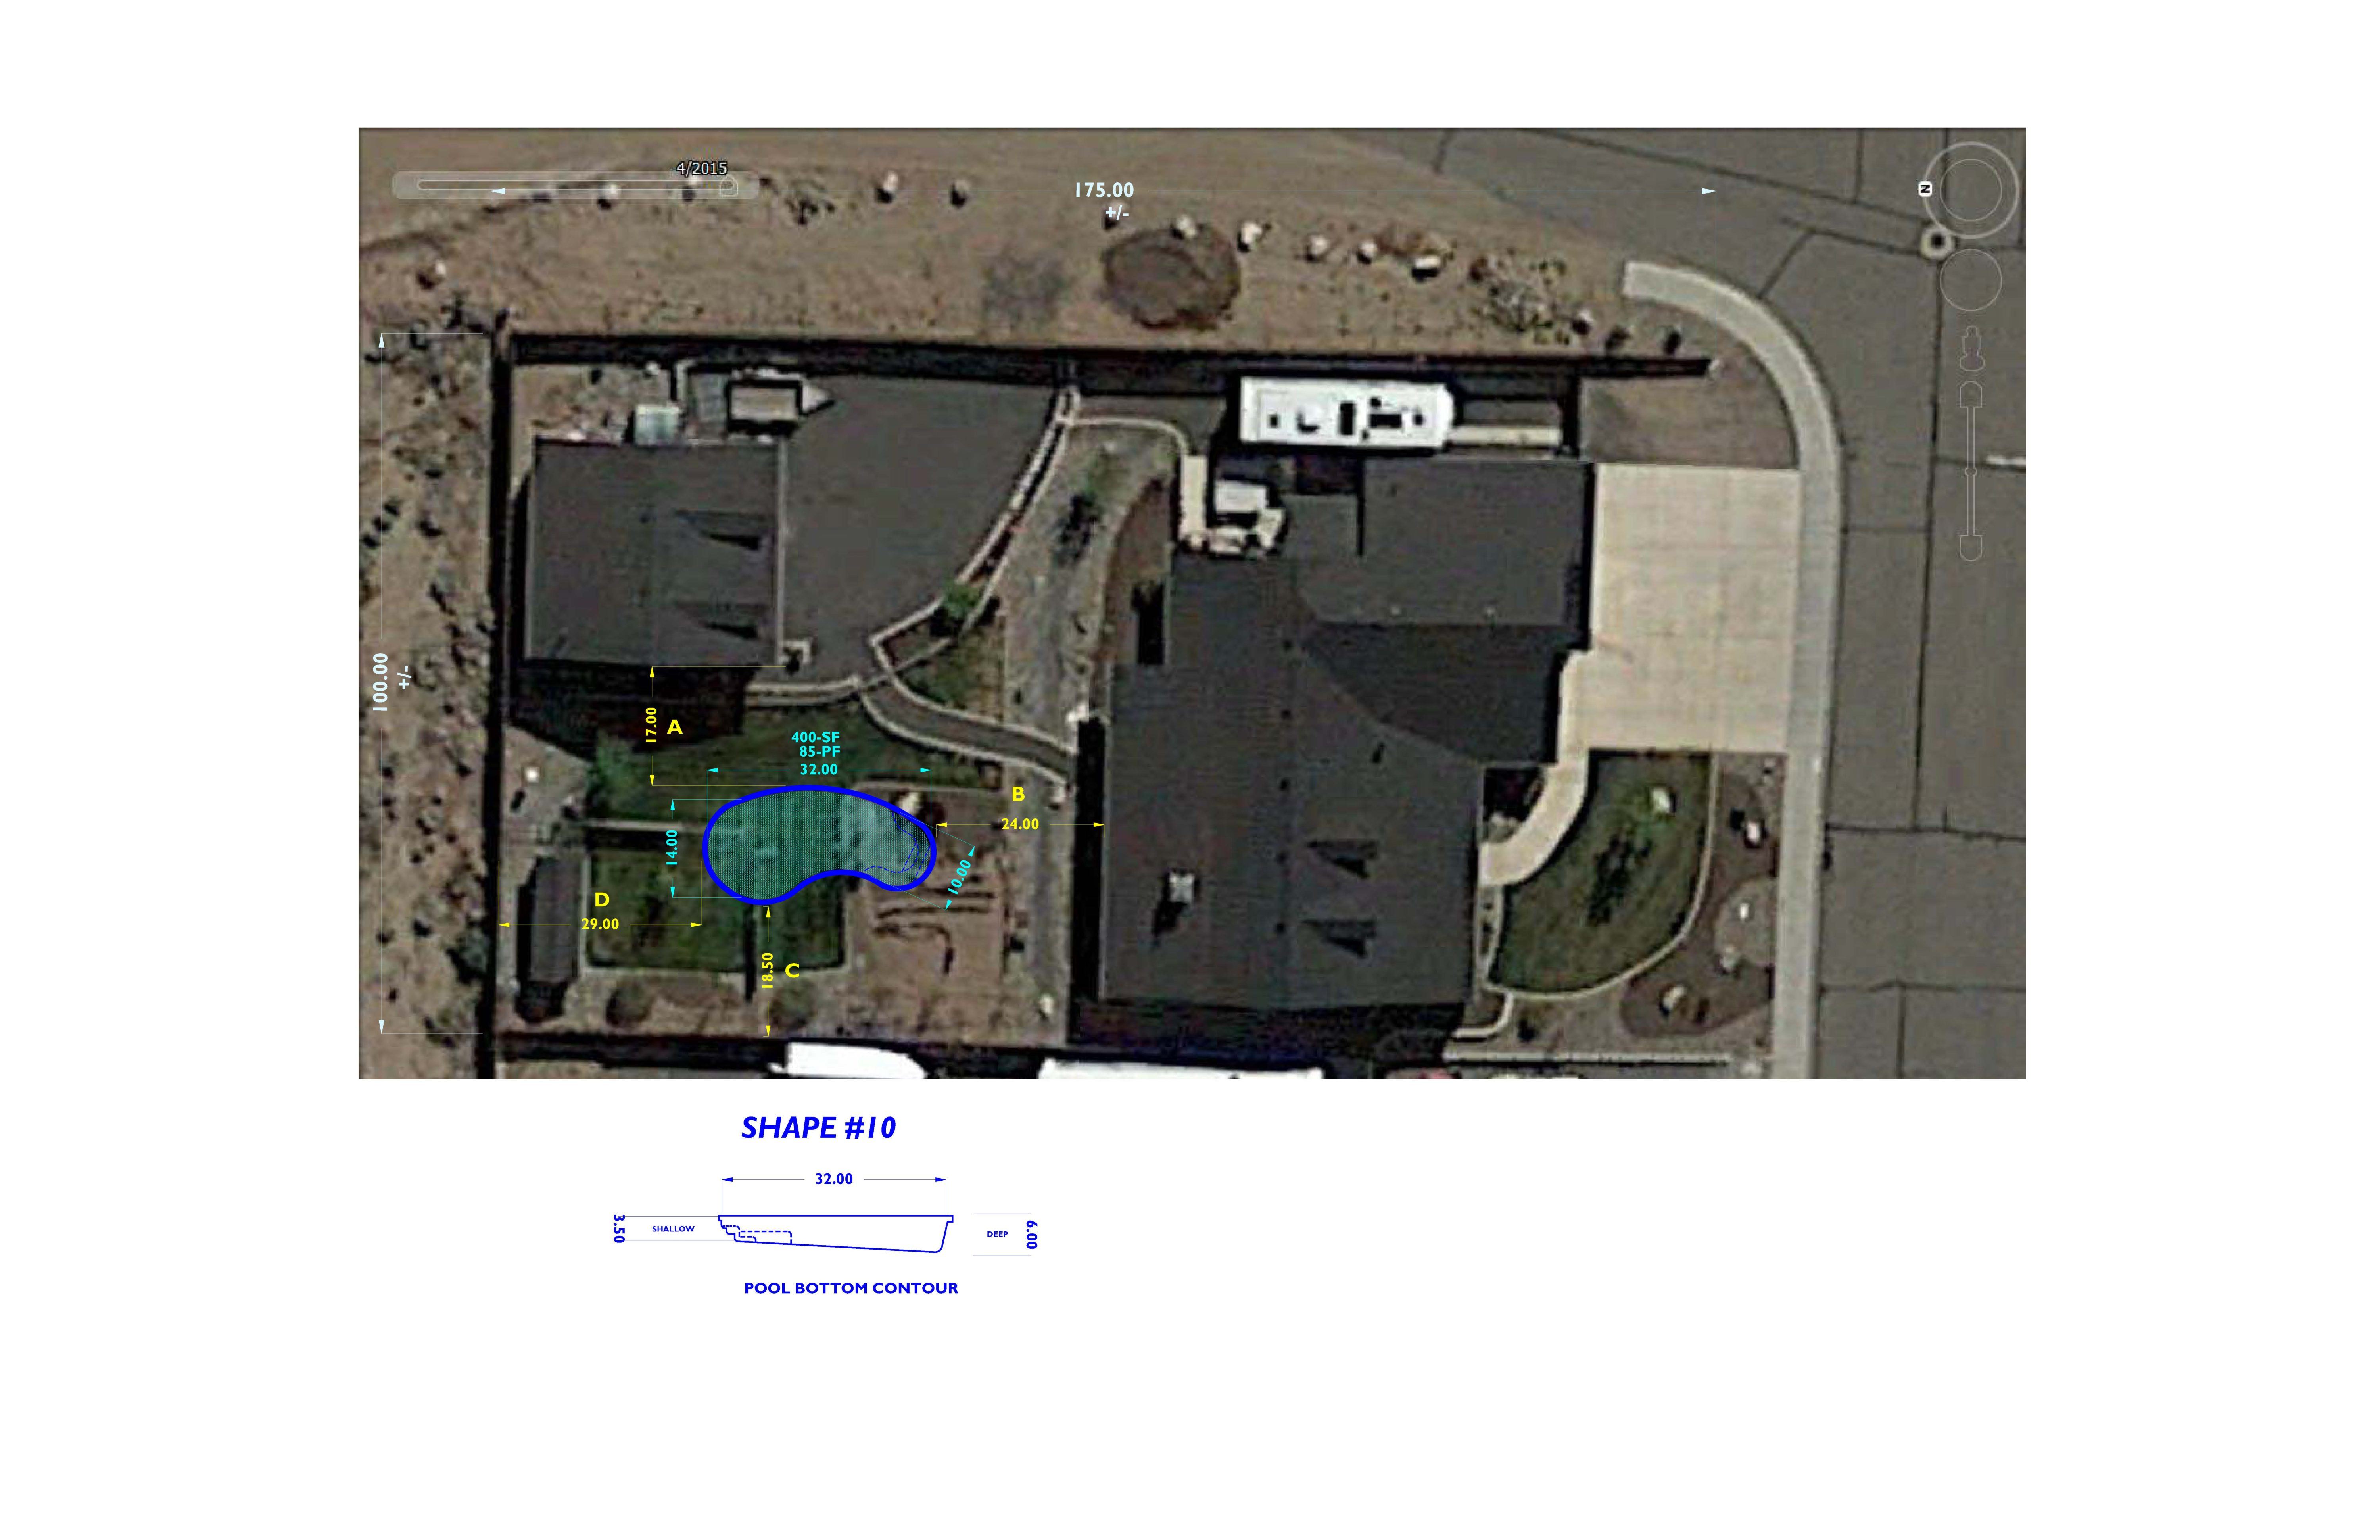 PRELIMINARY CONCEPT #1 SAT-IMAGE - SWIMMING POOL LAYOUT